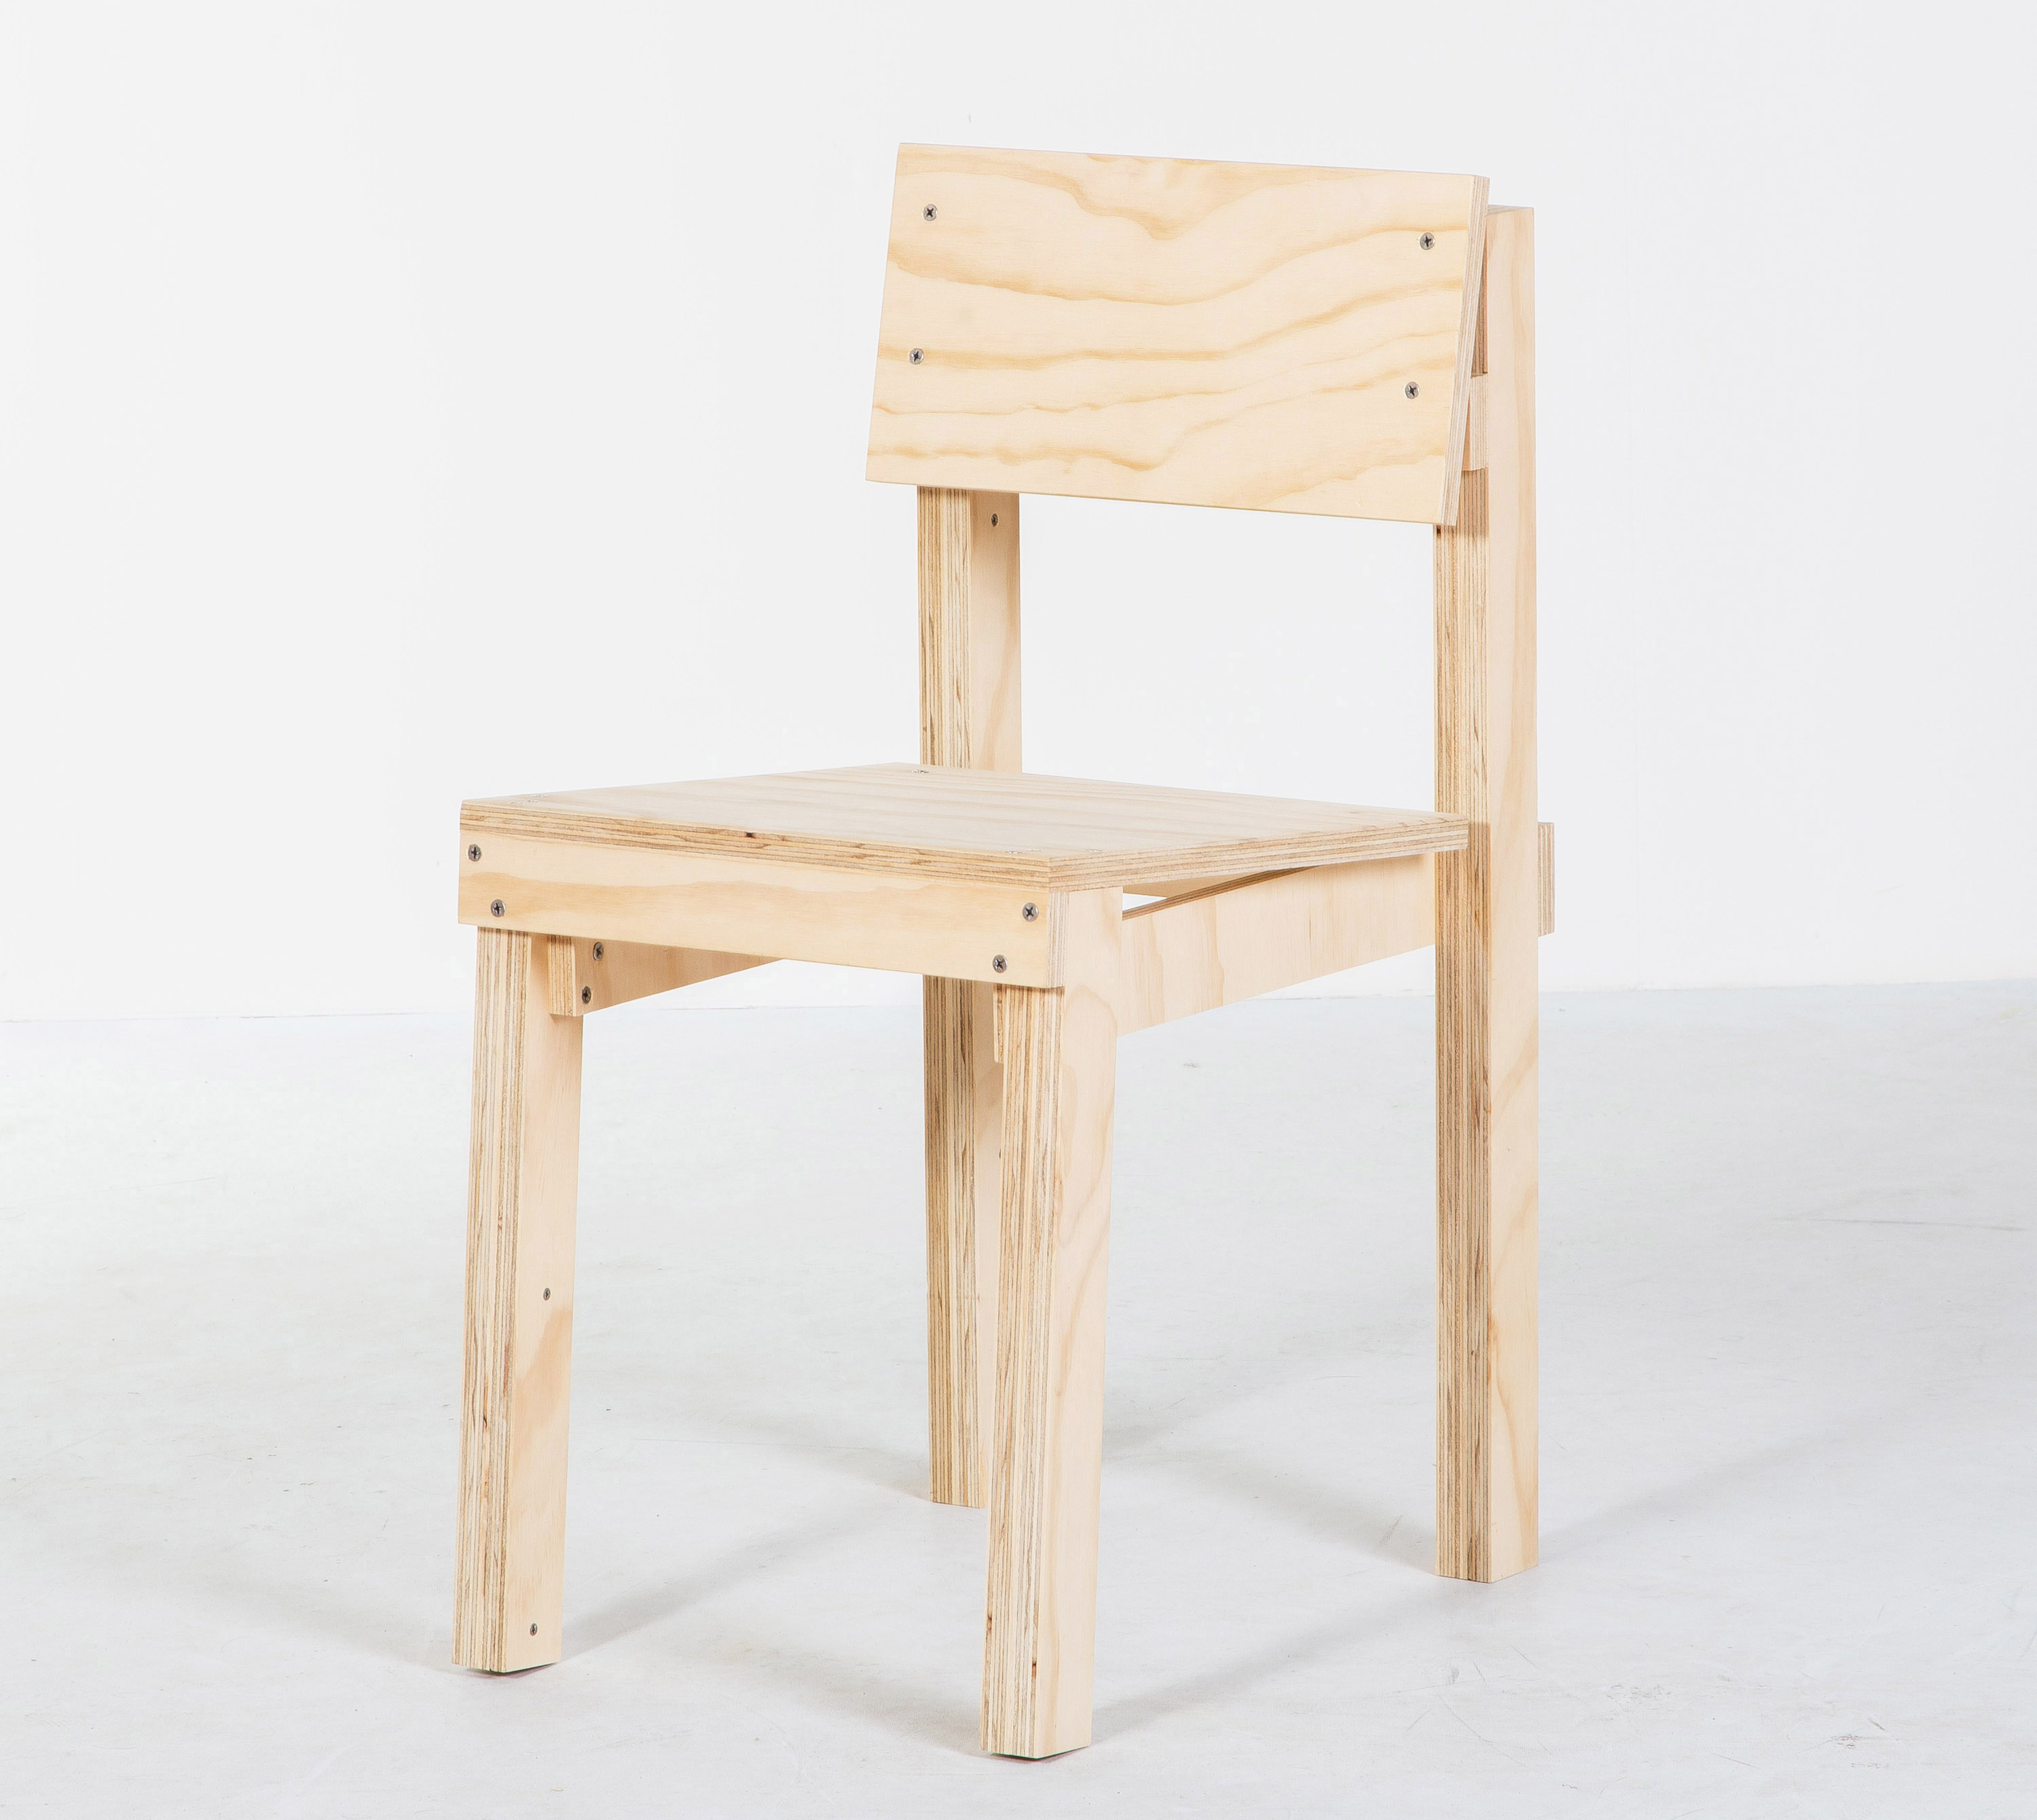 Plywood DIY Chair